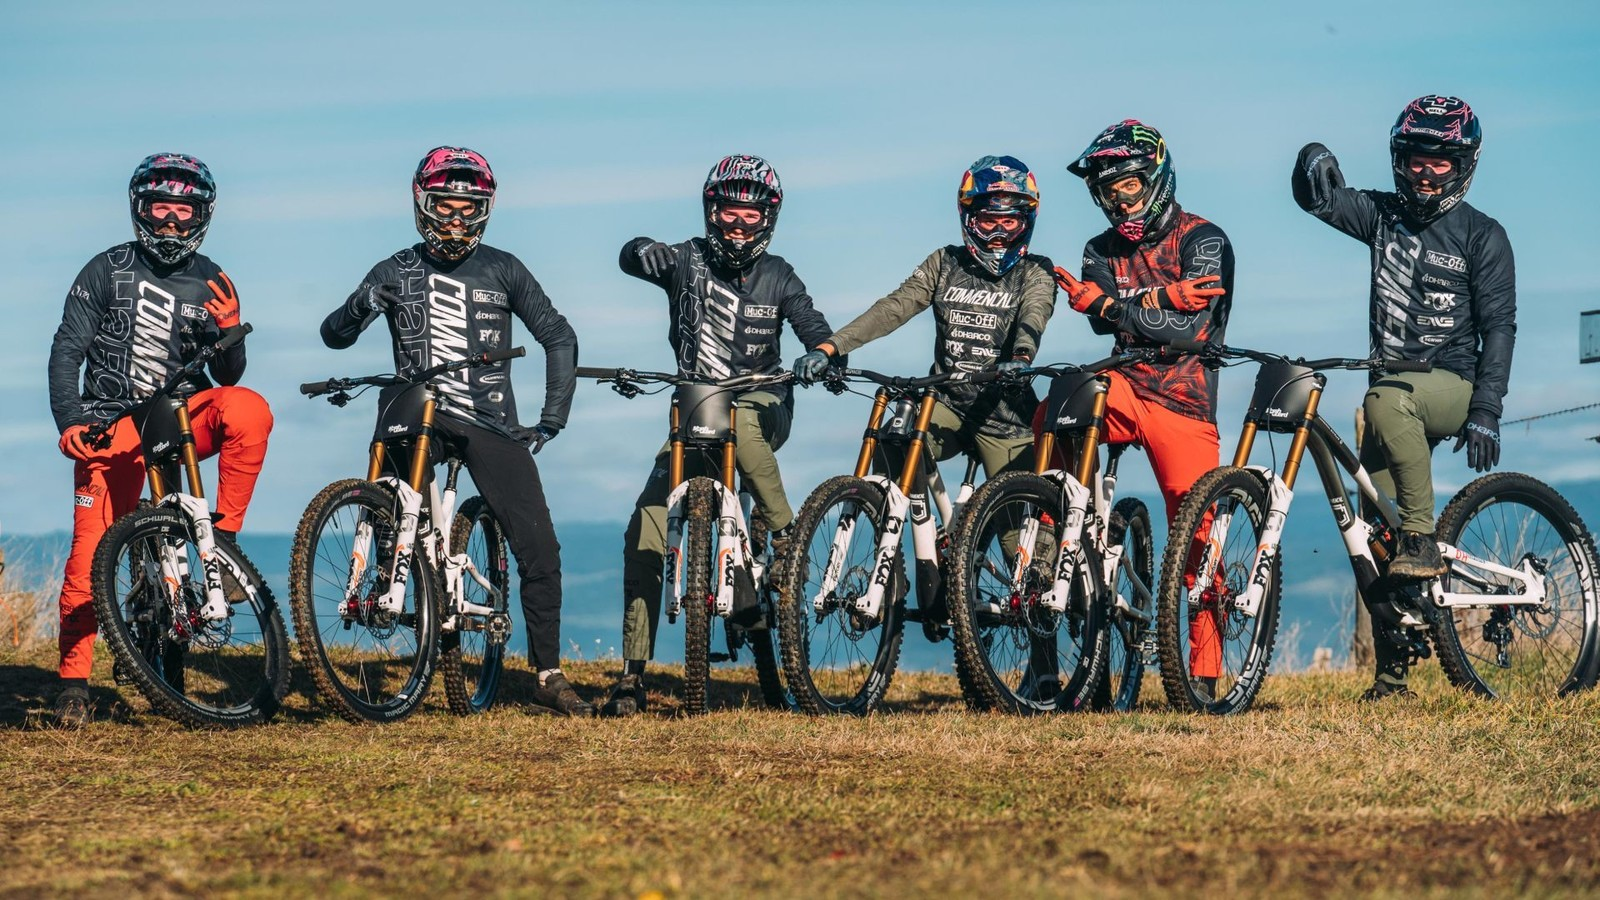 DHaRCO Partners with COMMENCAL / MUC-OFF Downhill Team for 2021